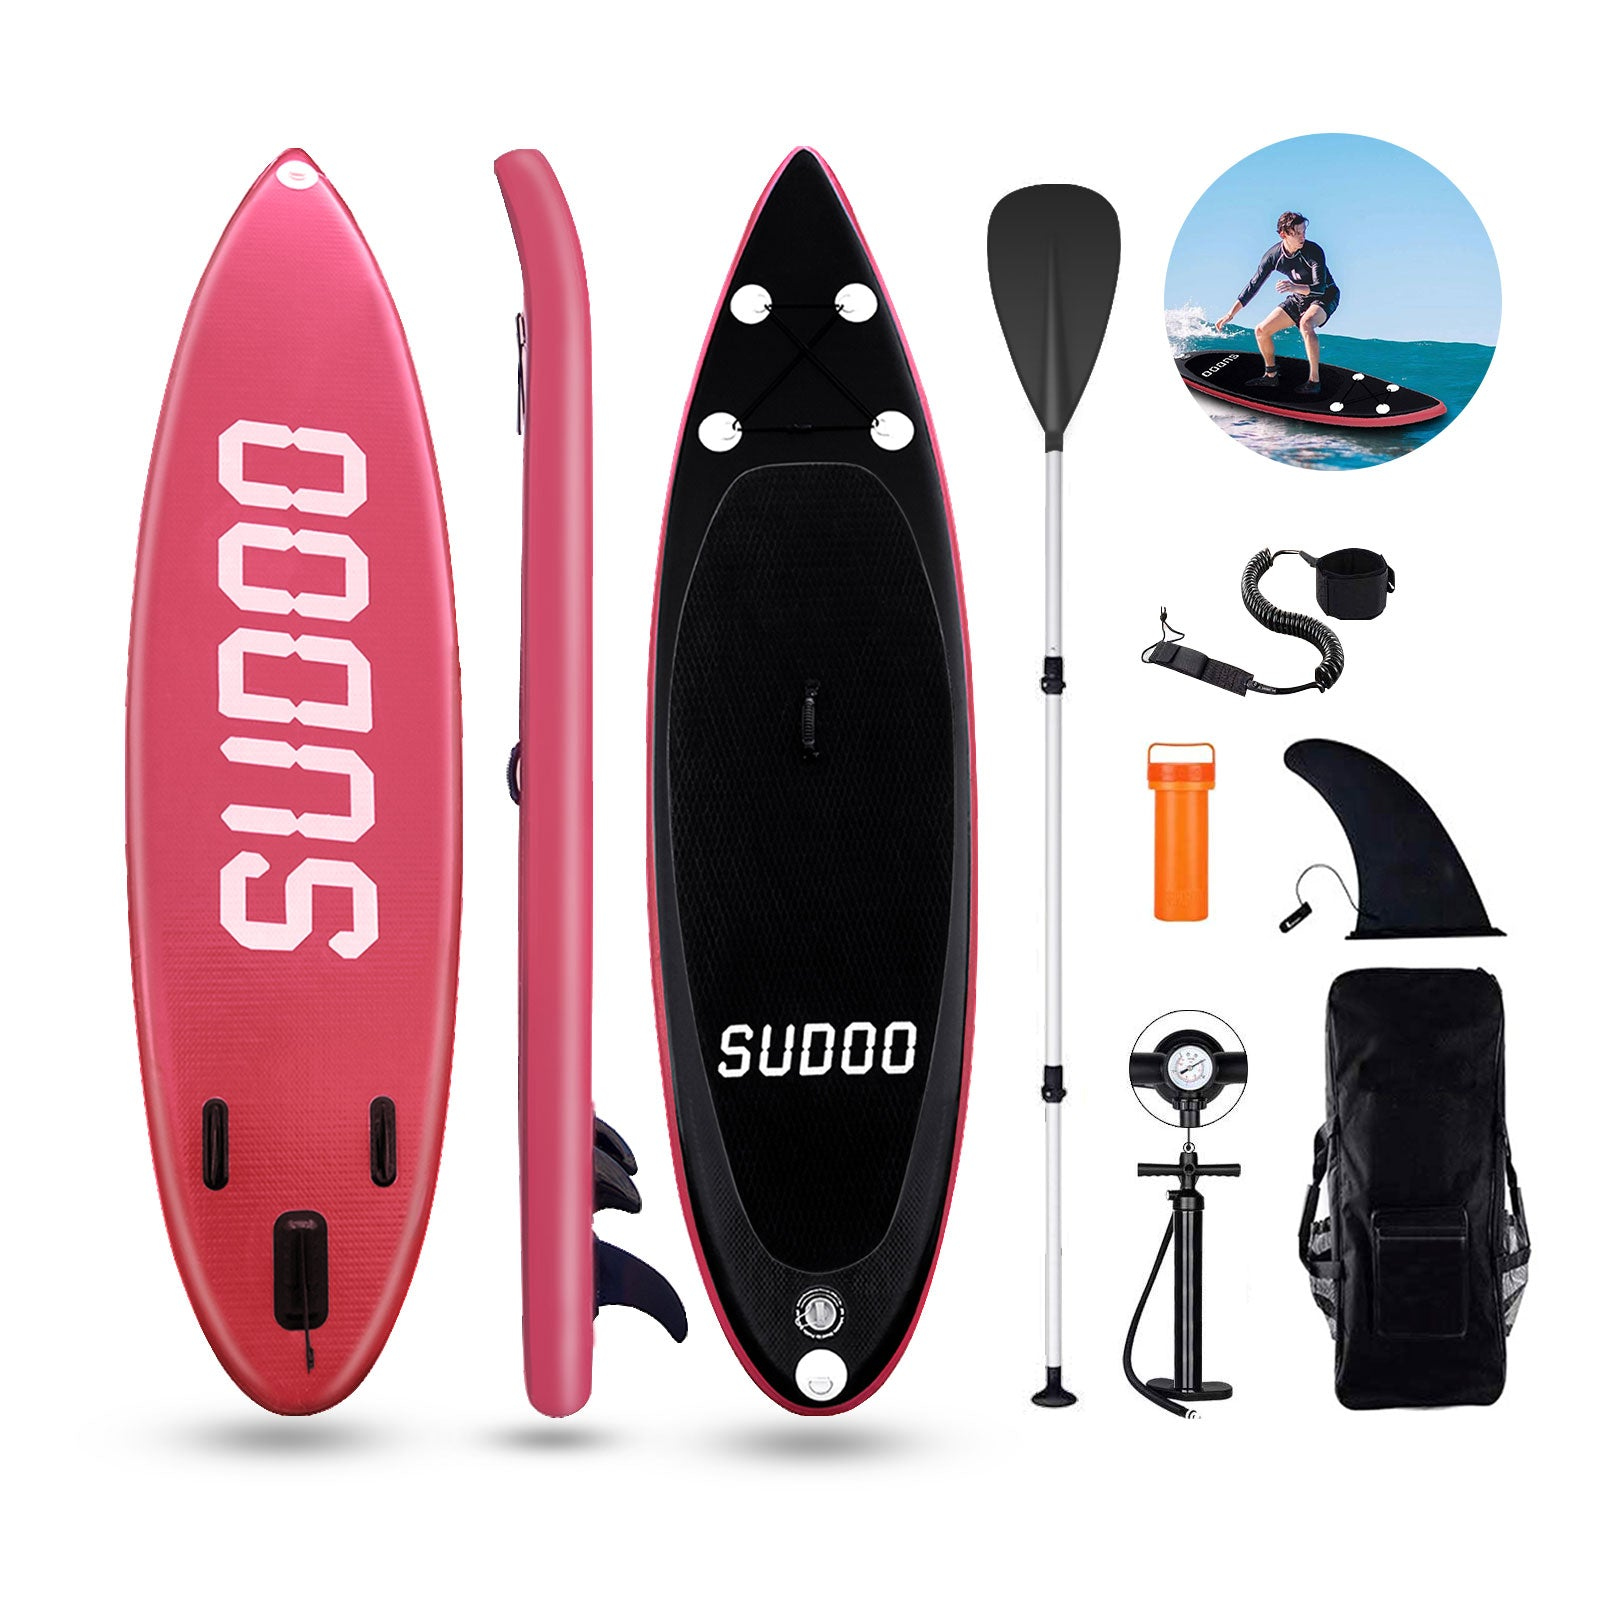 "3 Fins Inflatable 9'10"" SUP Stand Up Paddle Board Accessories With Pump Surfing Red Sudoo UK ( Will be shipped on 10th May )"